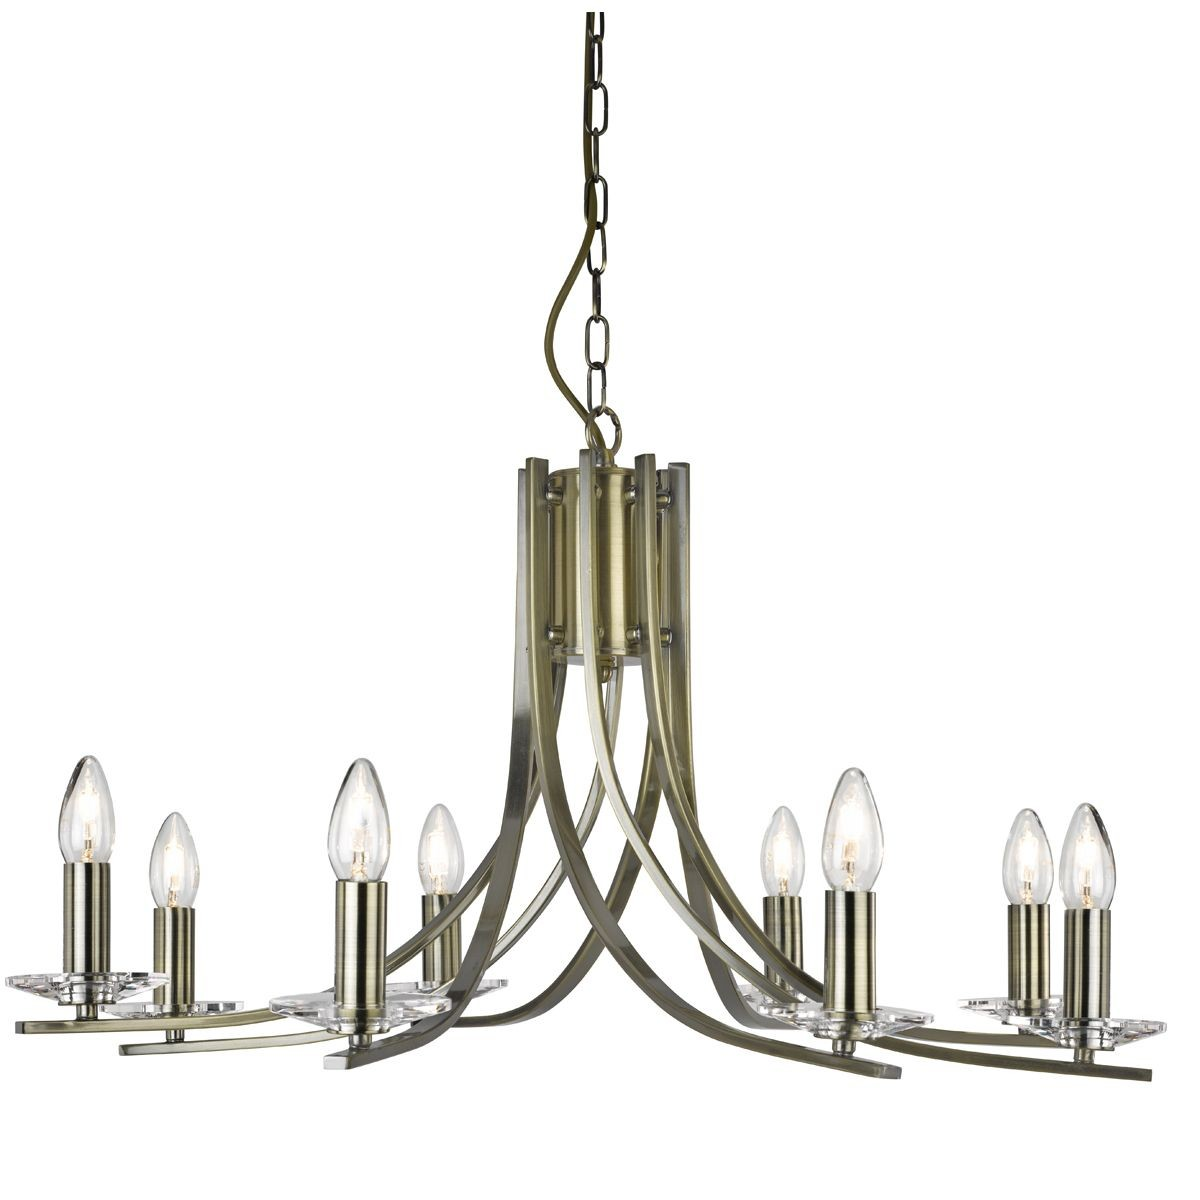 Brass Chandelier Ceiling Lights : Ascona light ceiling antique brass